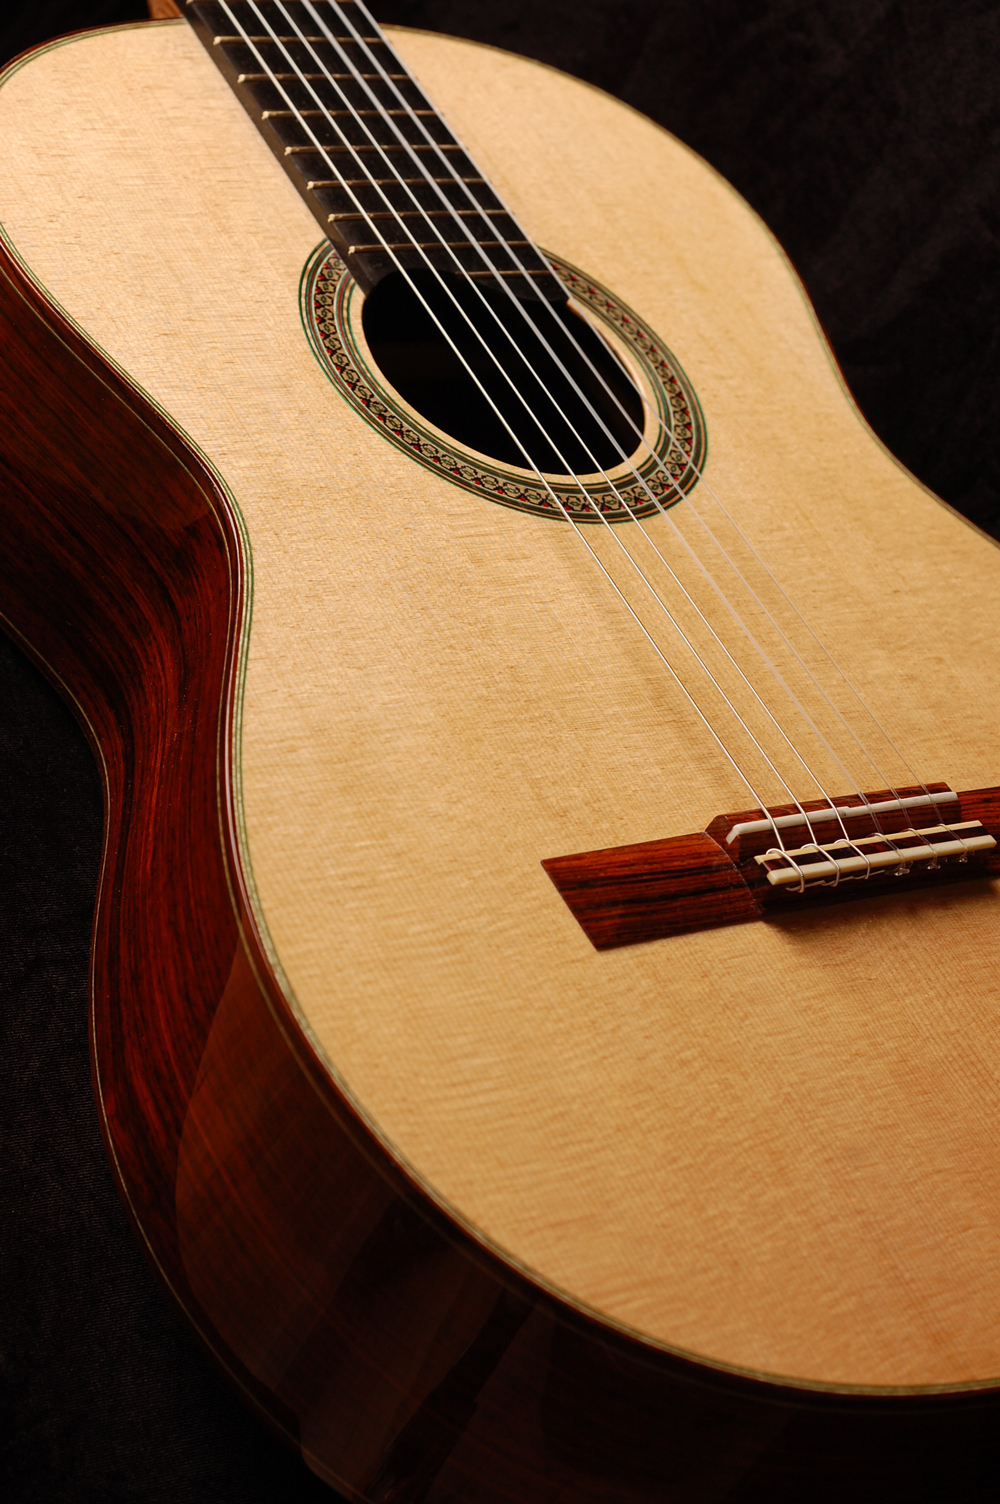 A special Spruce top